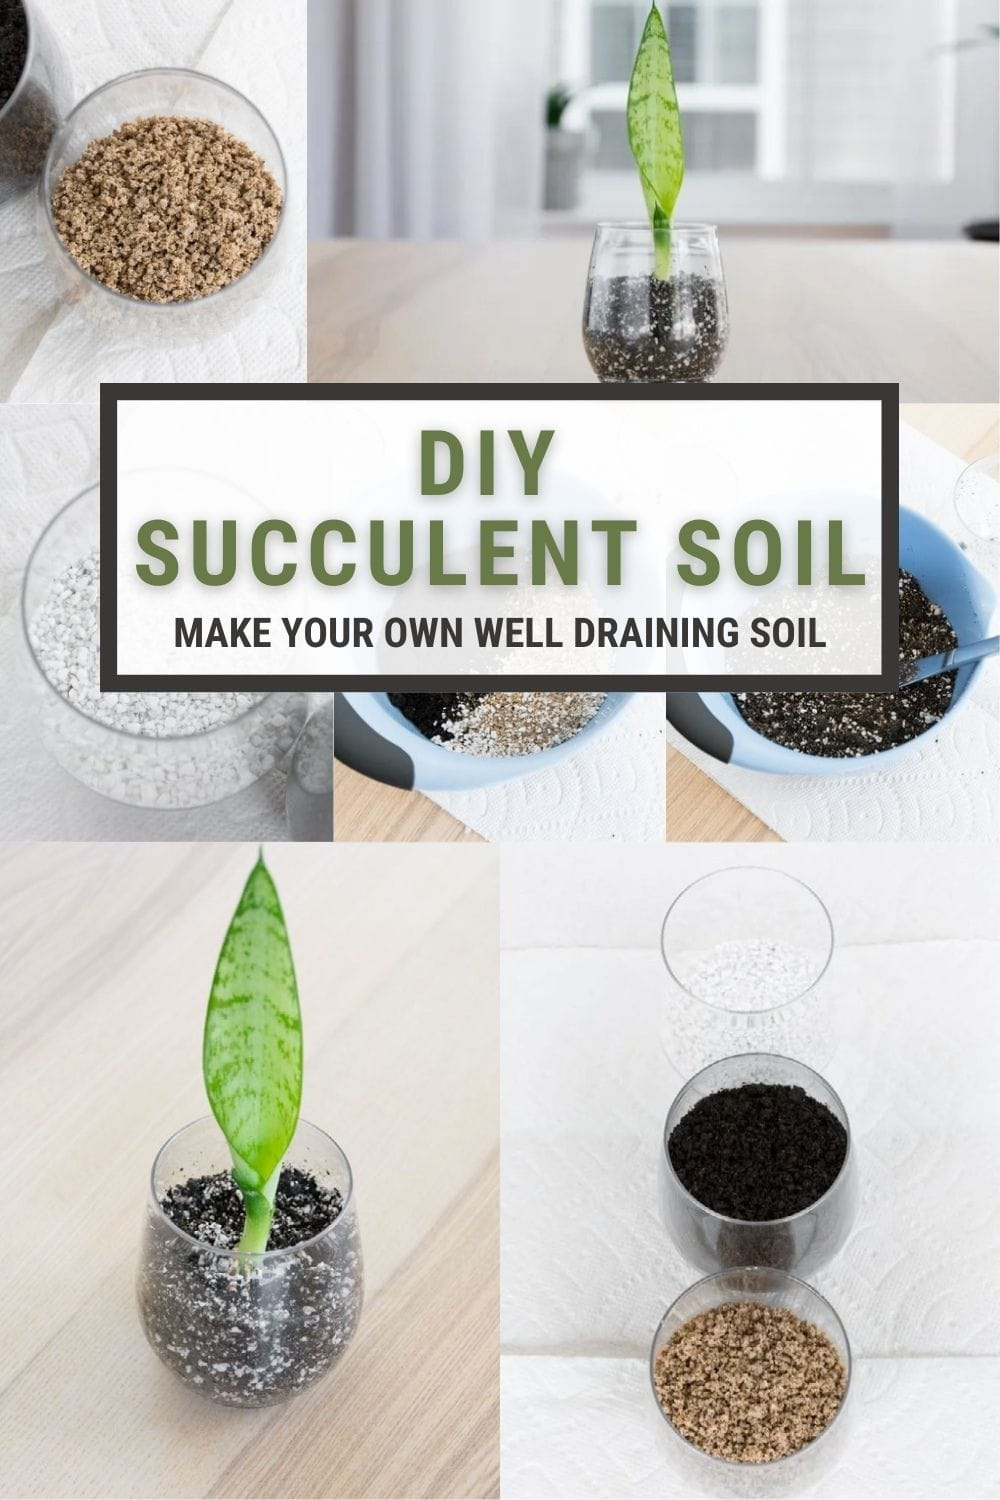 image collage of DIY succulent soil with text DIY succulent Soil, make your own well draining soil